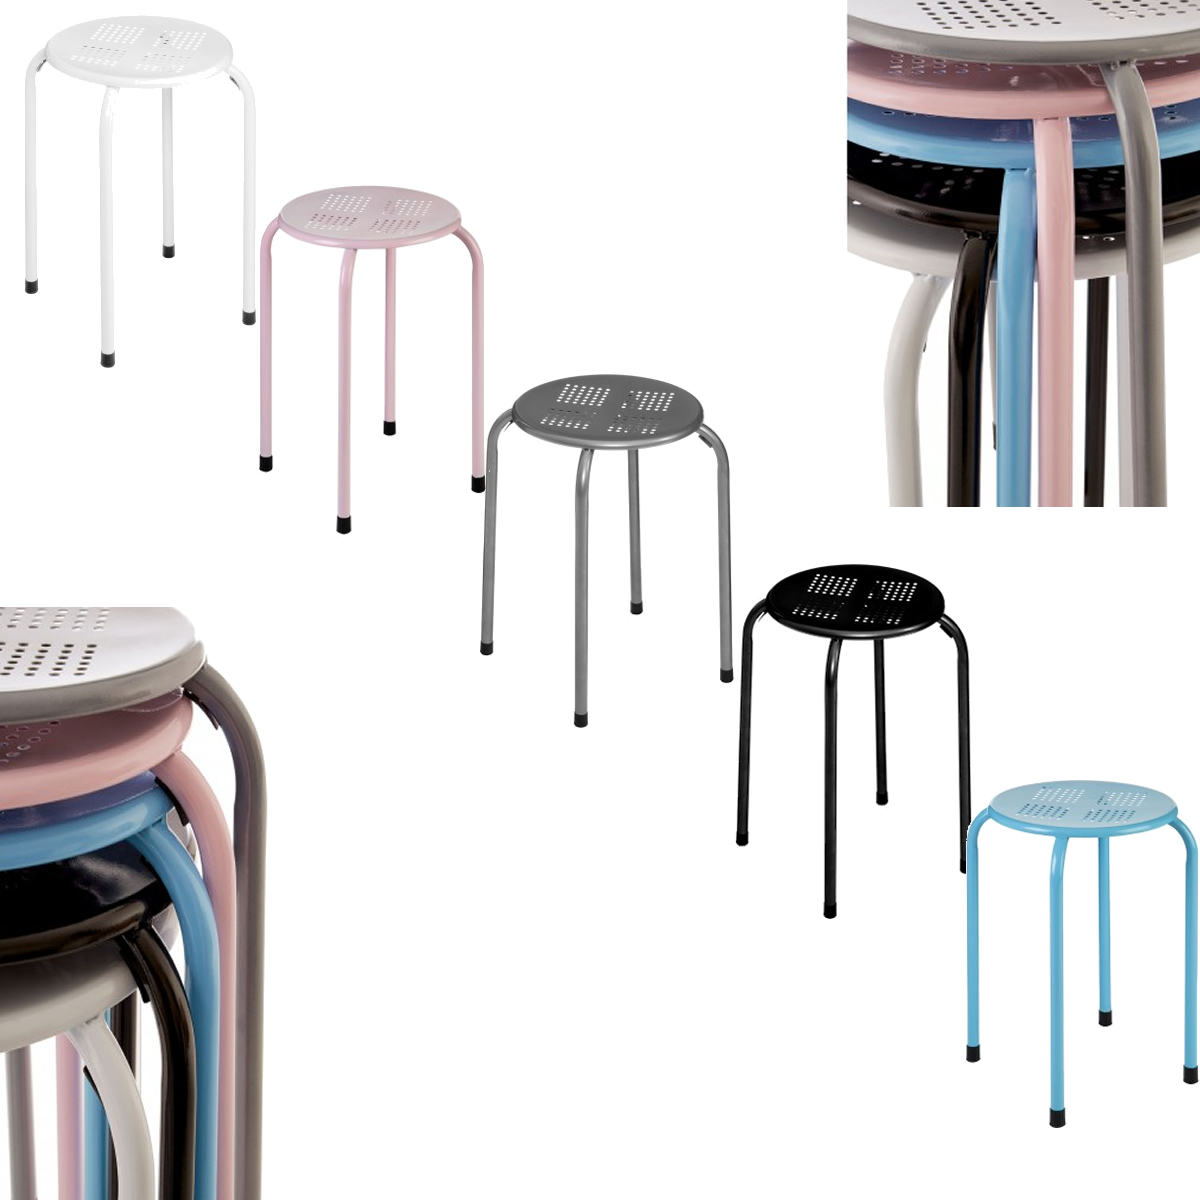 Outstanding Details About Metal Stool Stacking Dining Living Room Kitchen Breakfast Seating Stackable Seat Theyellowbook Wood Chair Design Ideas Theyellowbookinfo